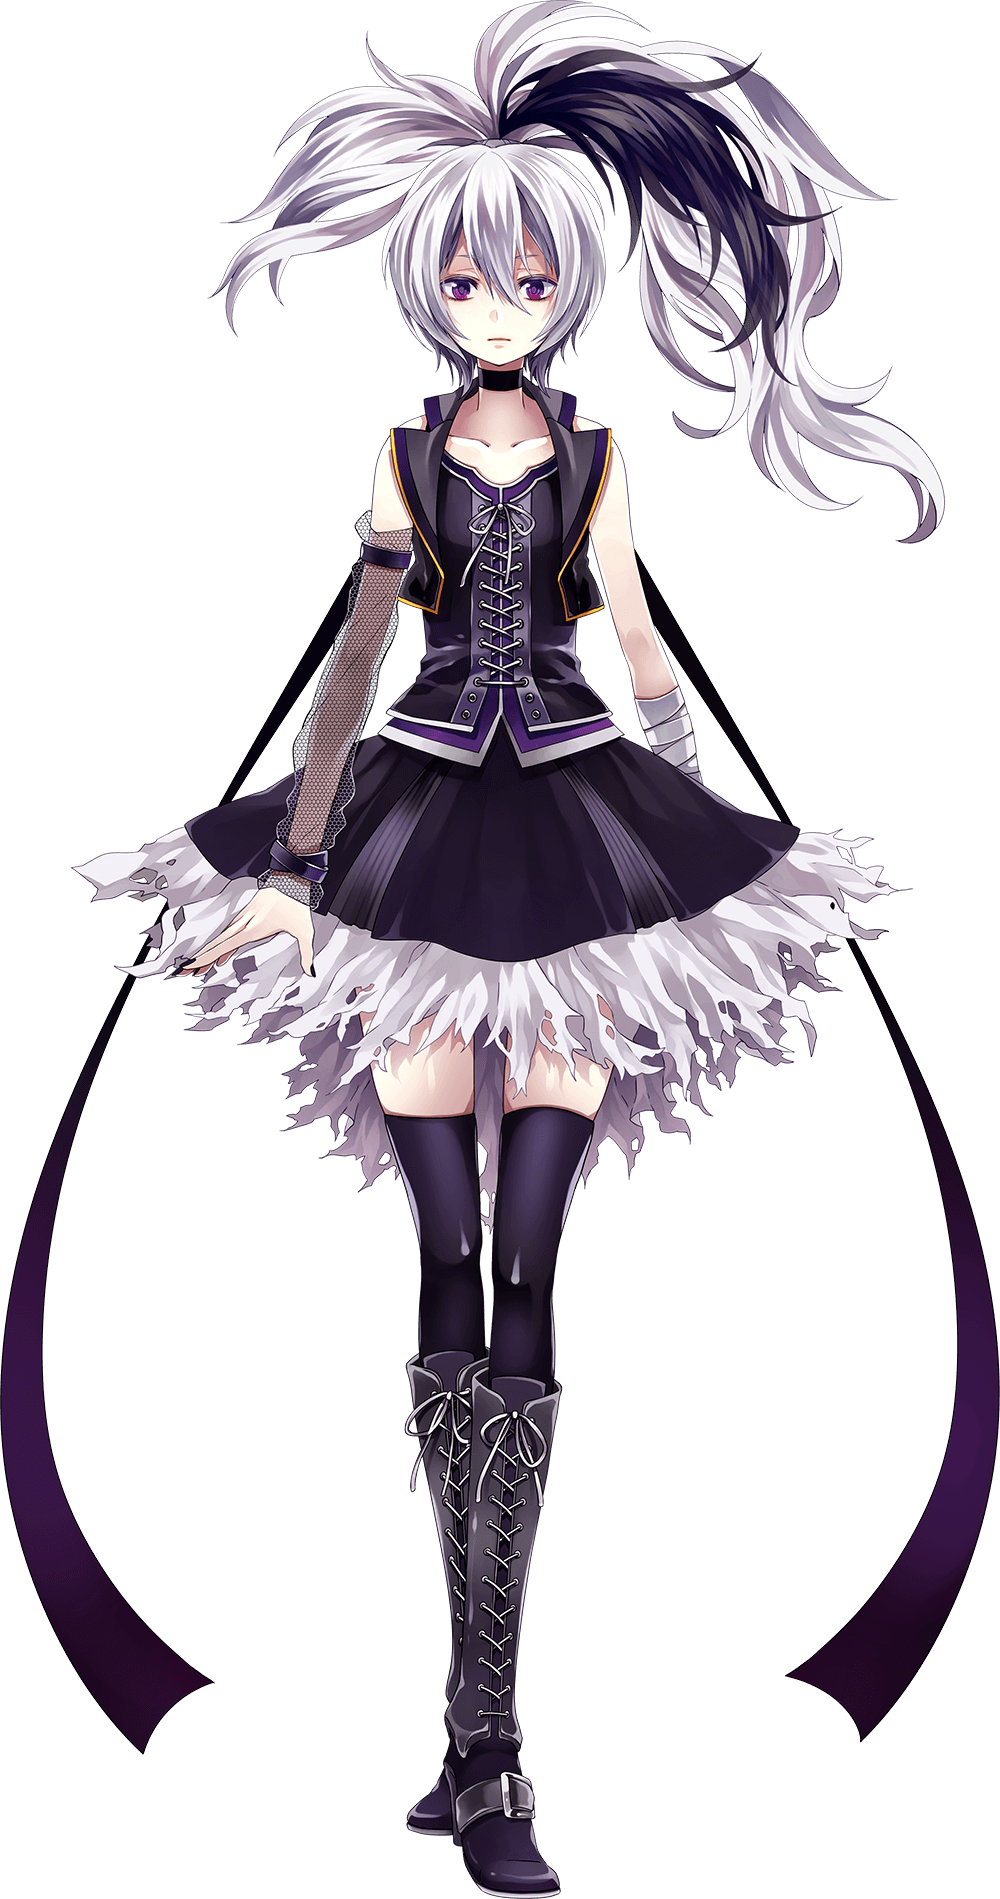 flower - Vocaloid Wiki - Voice synthesizer